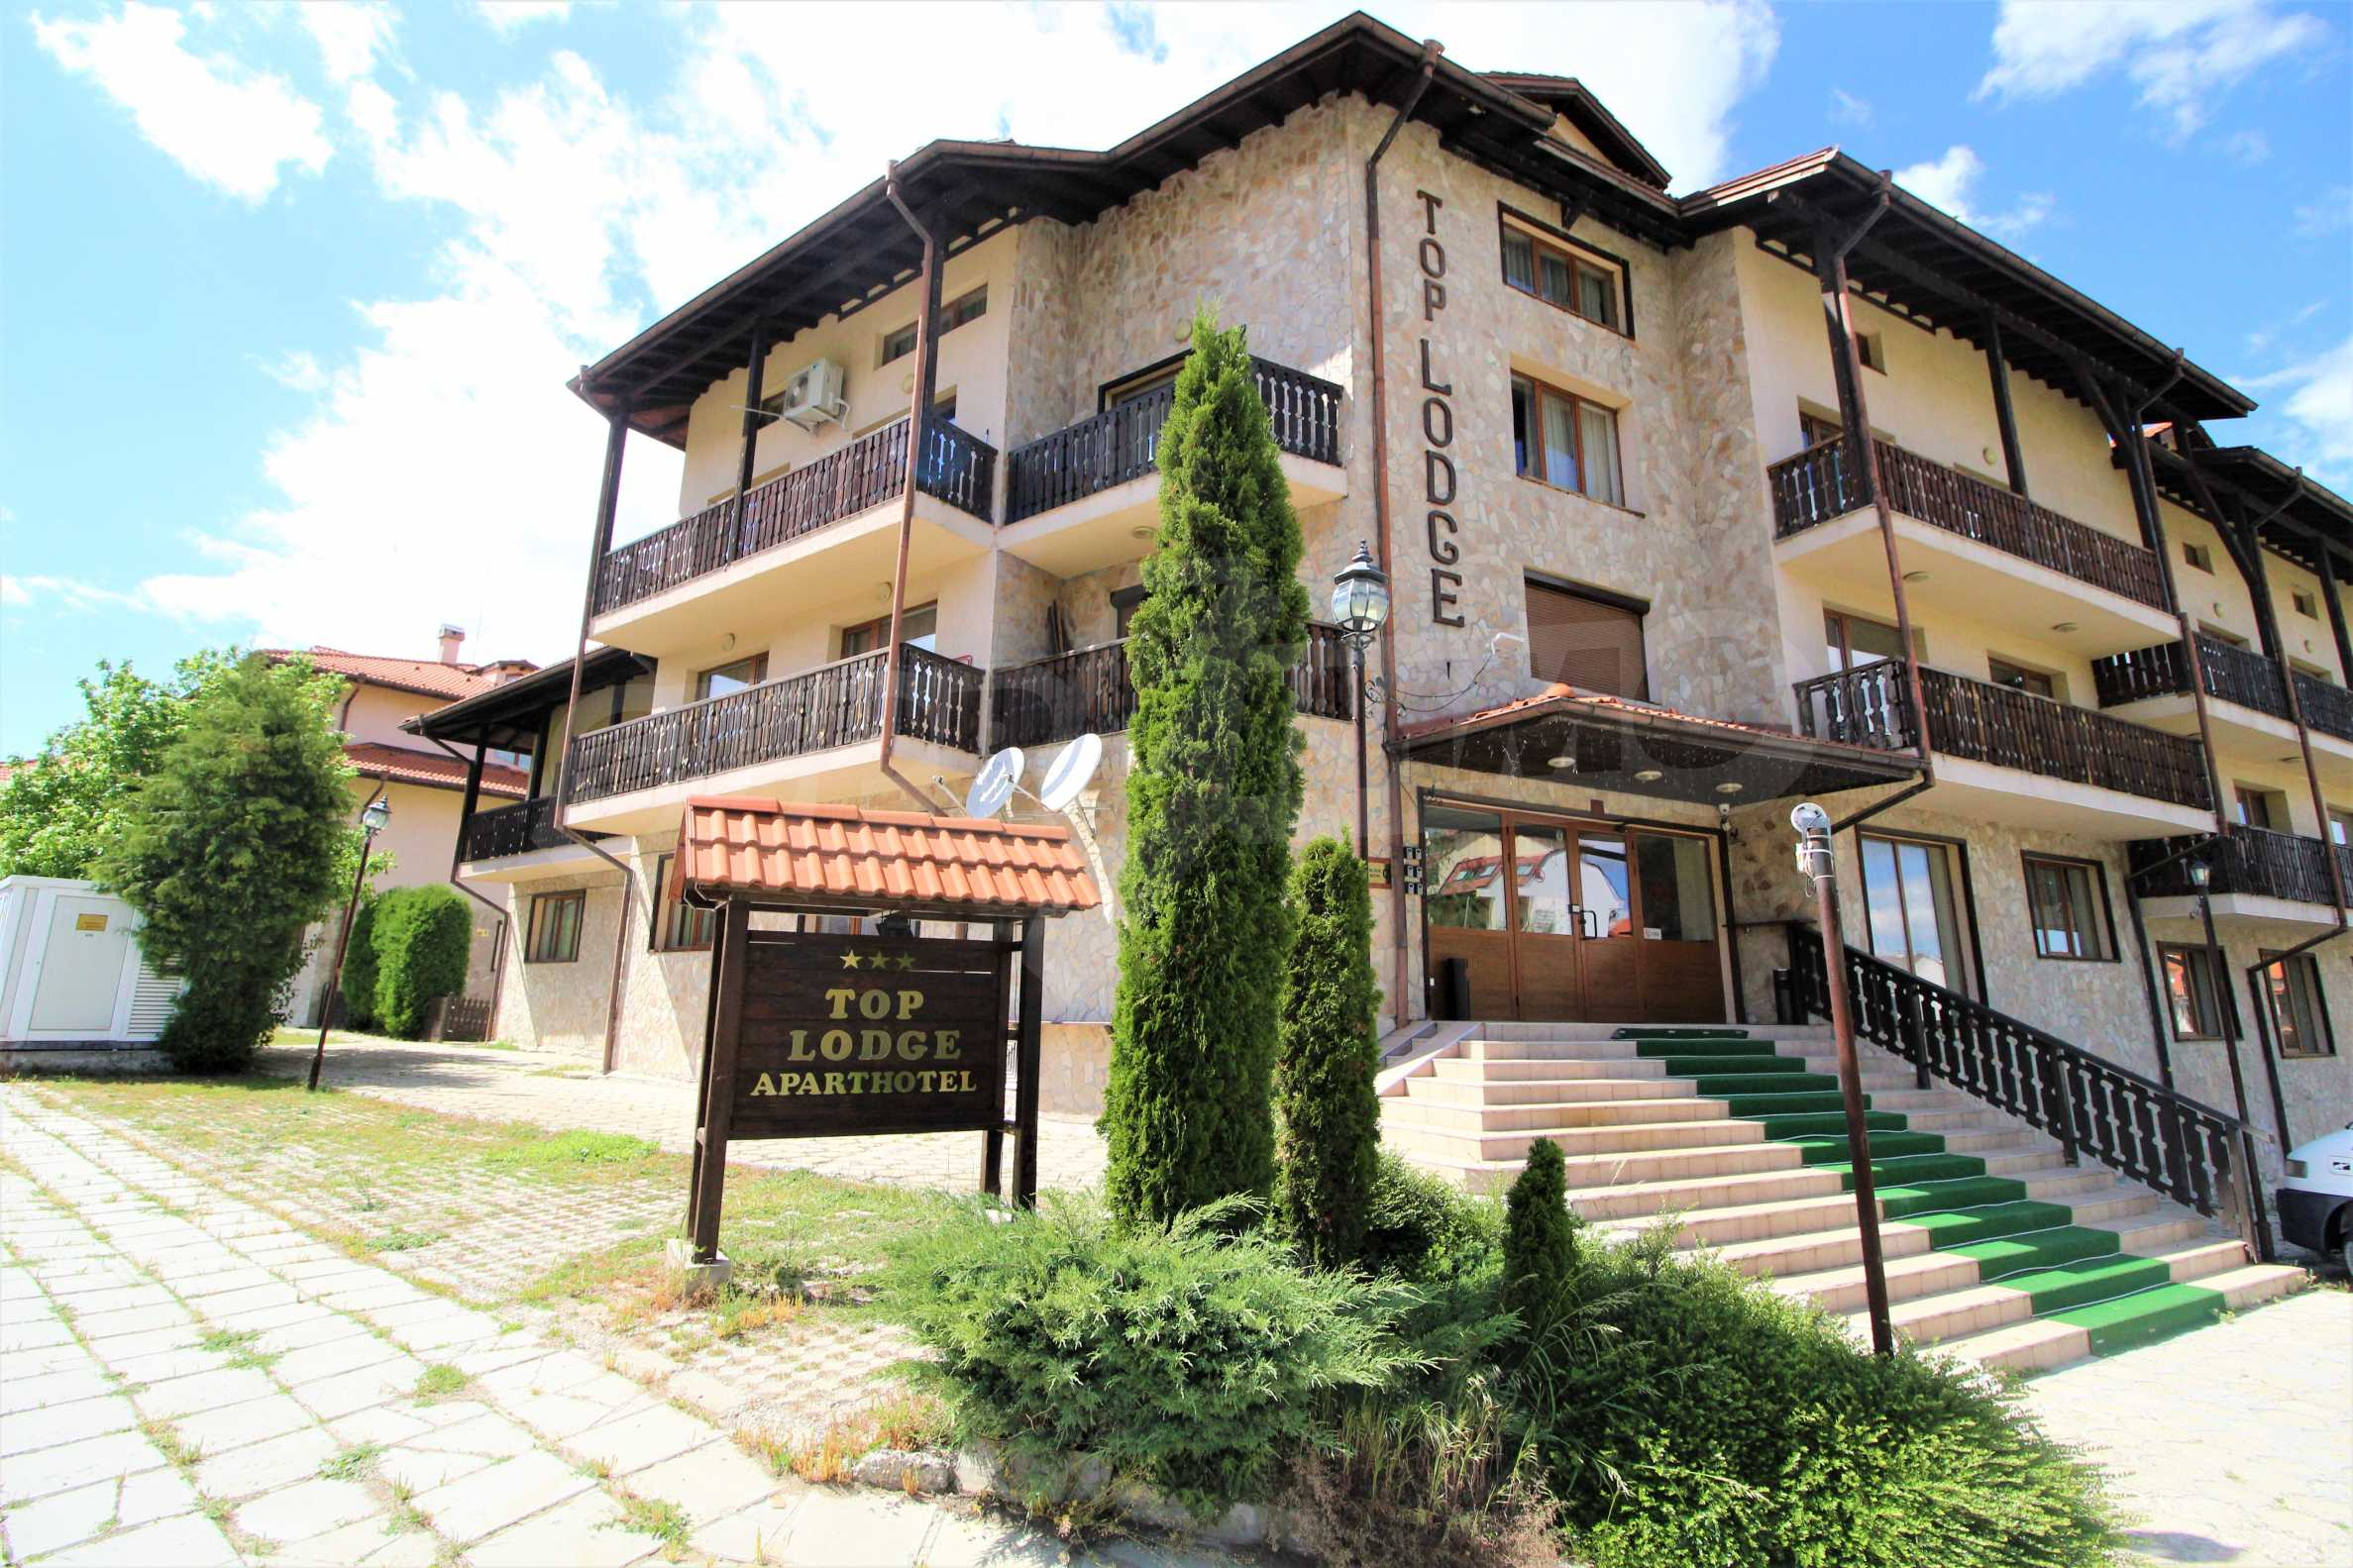 Furnished two-bedroom apartment located in Top Lodge complex, just meters from the ski lift in Bansko 14